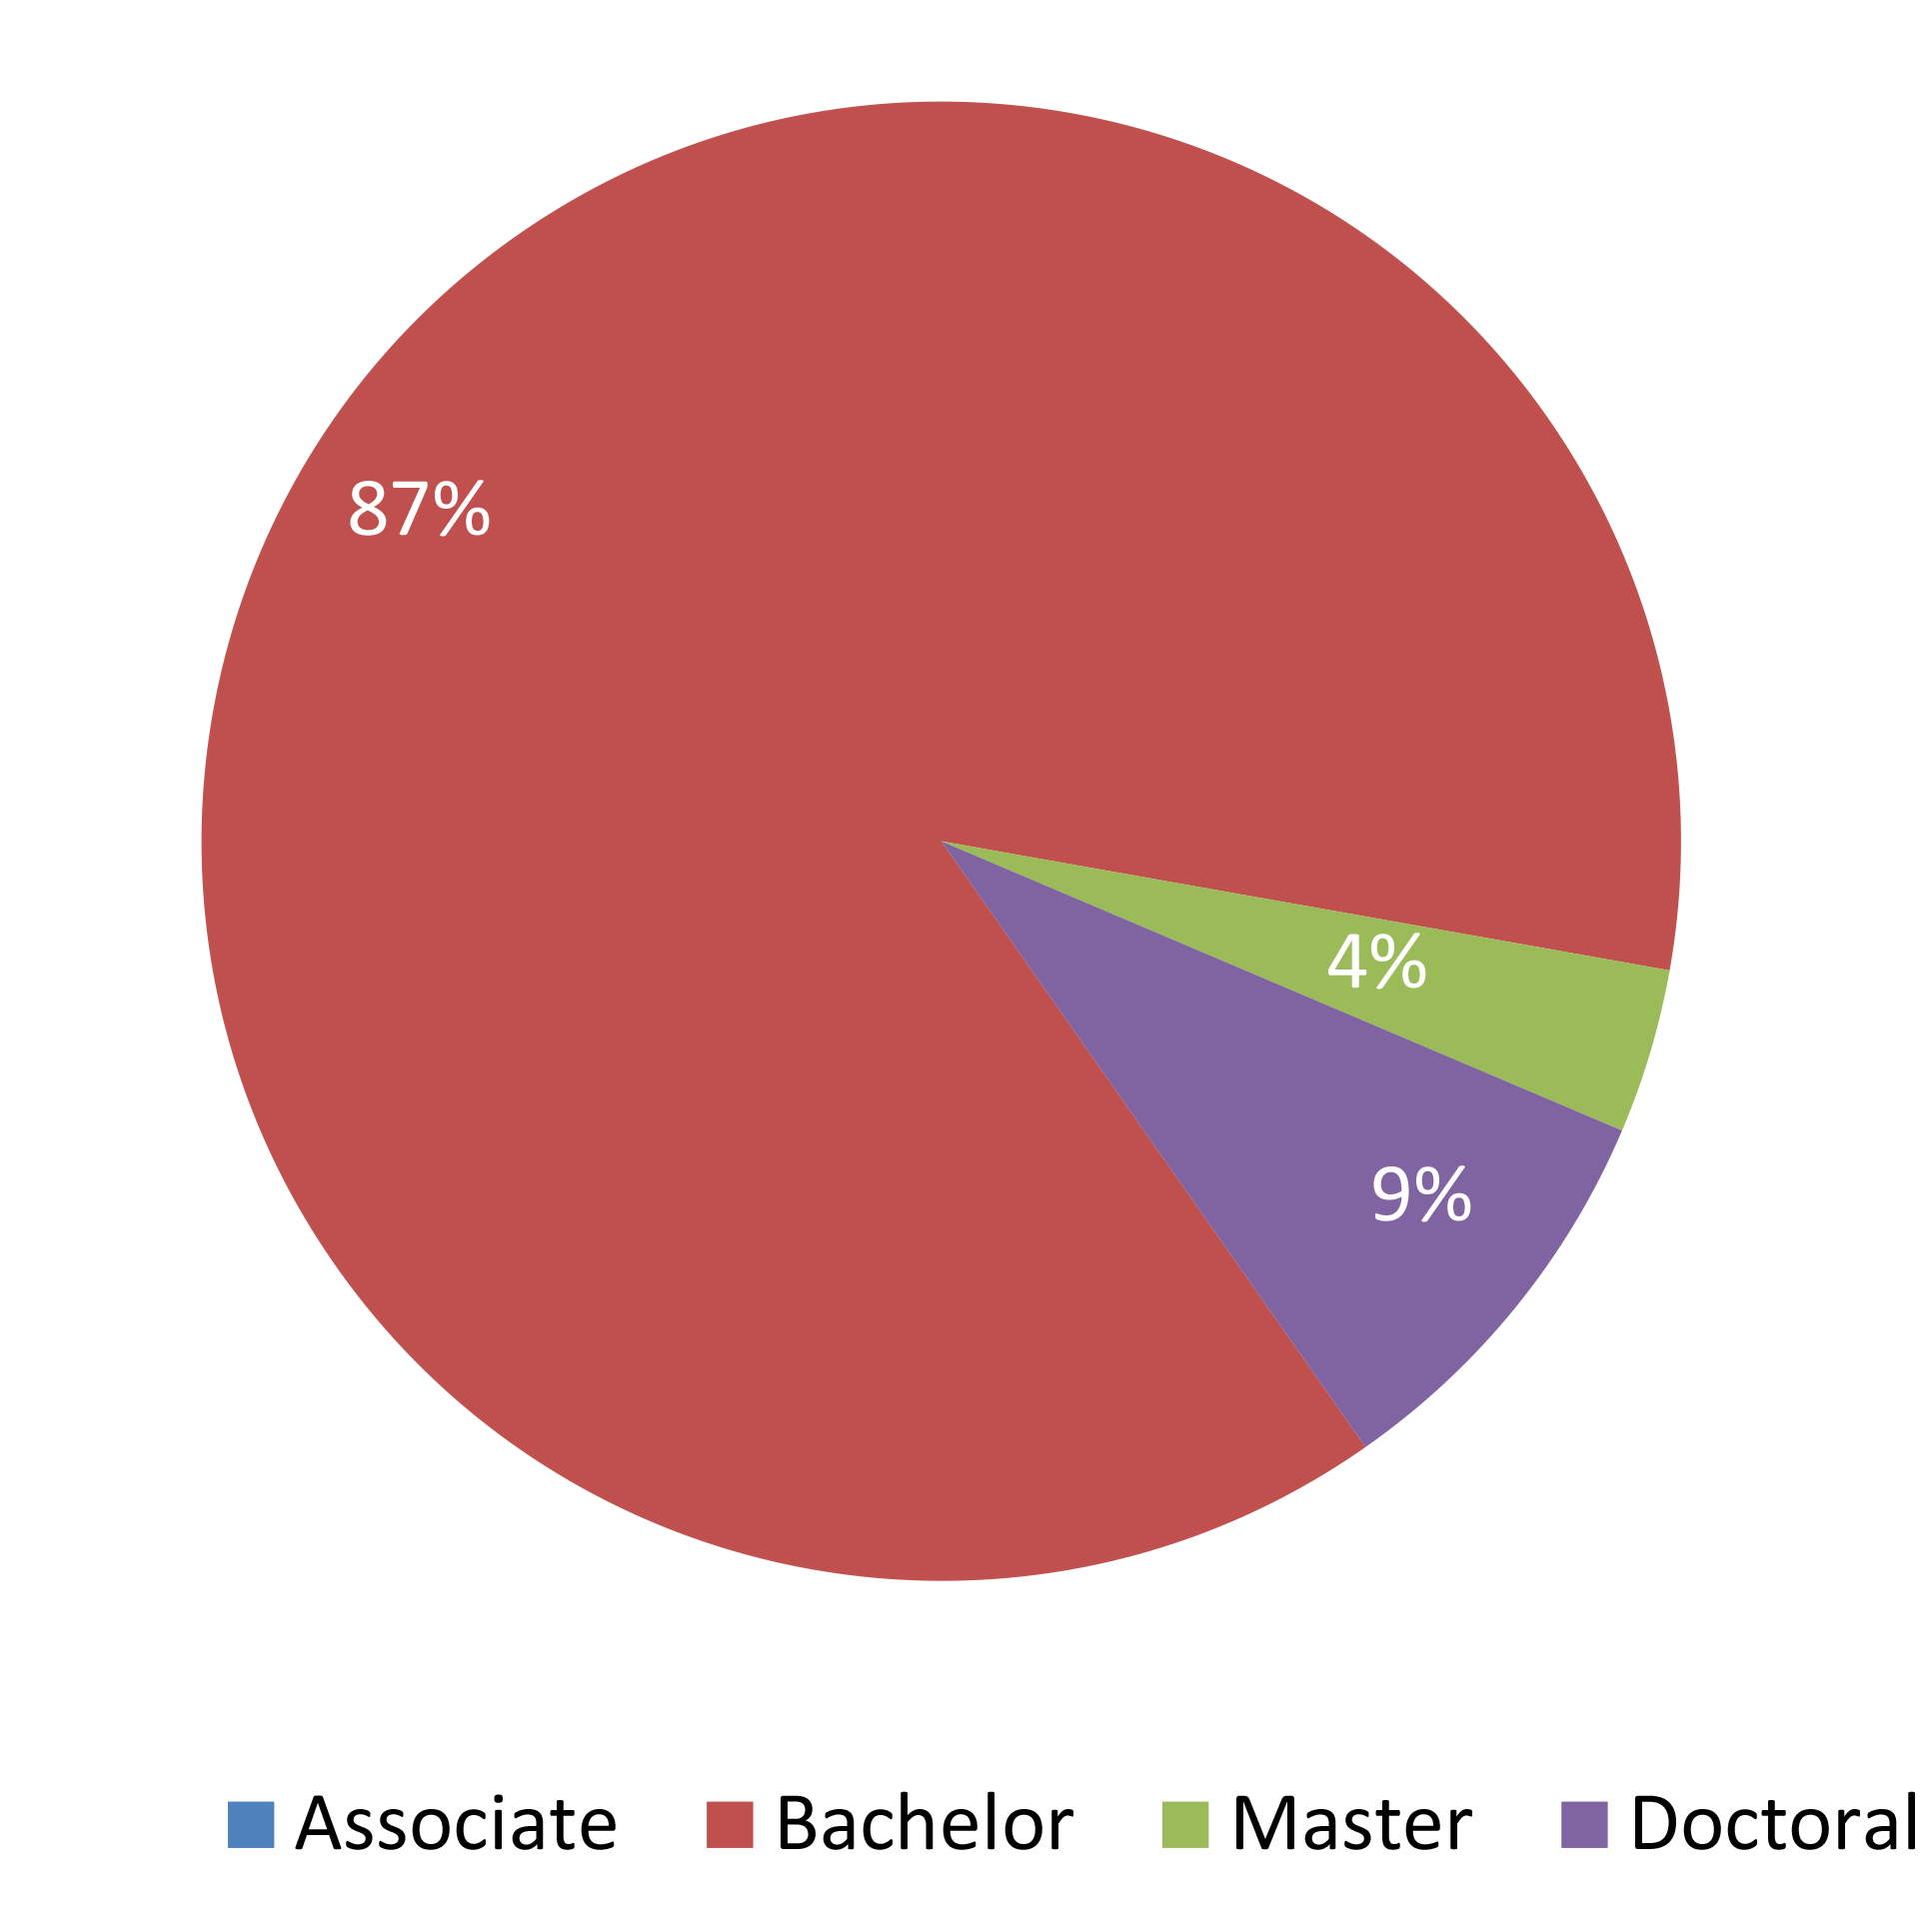 degrees-conferred-pie-byblos.png